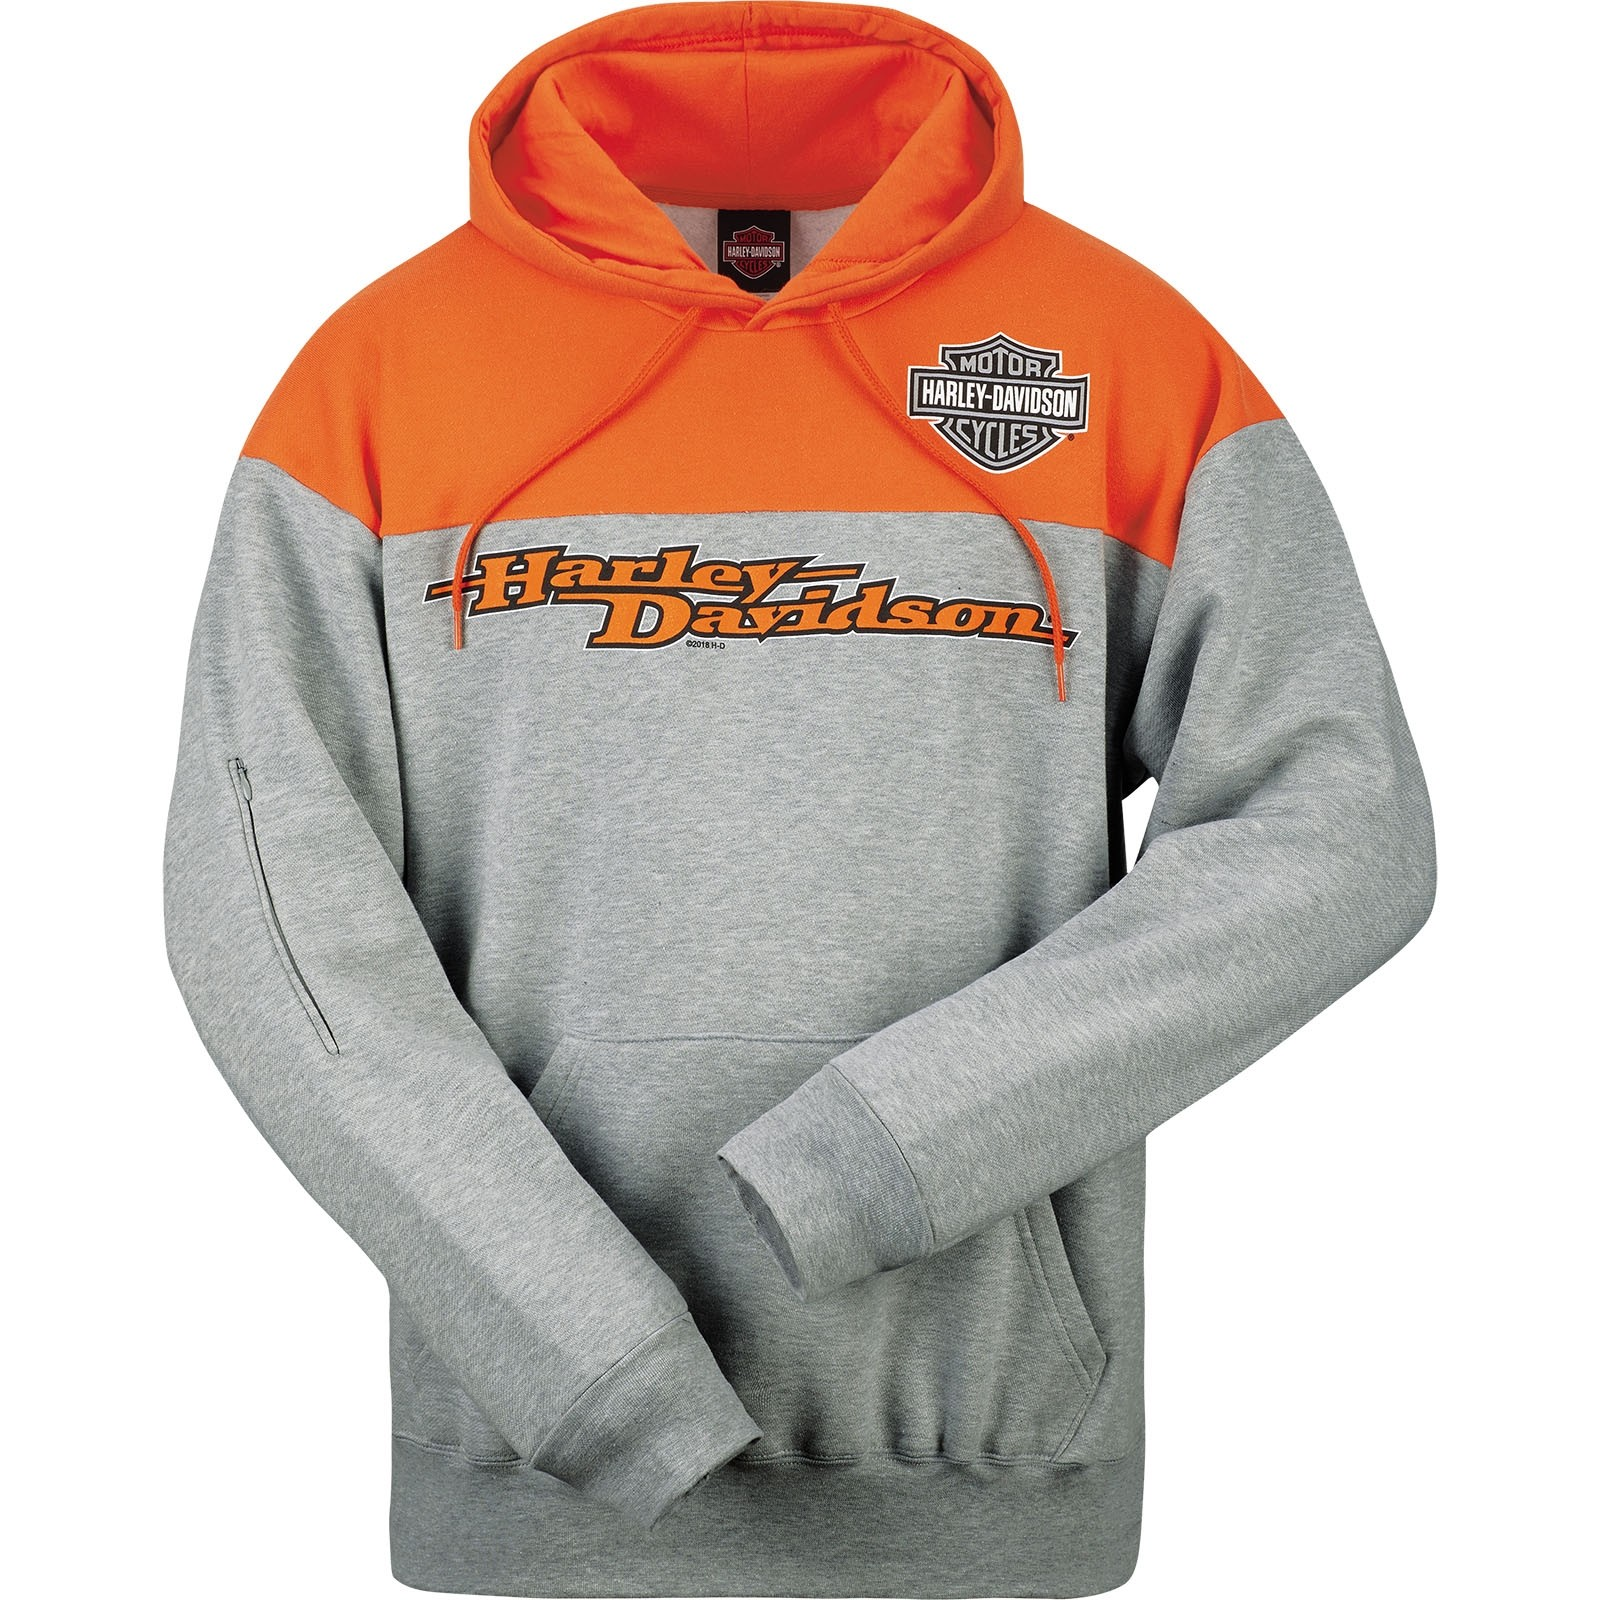 Harley-Davidson Pullover Hooded Sweatshirt with Tech Pocket - Overseas Tour | Block H-D